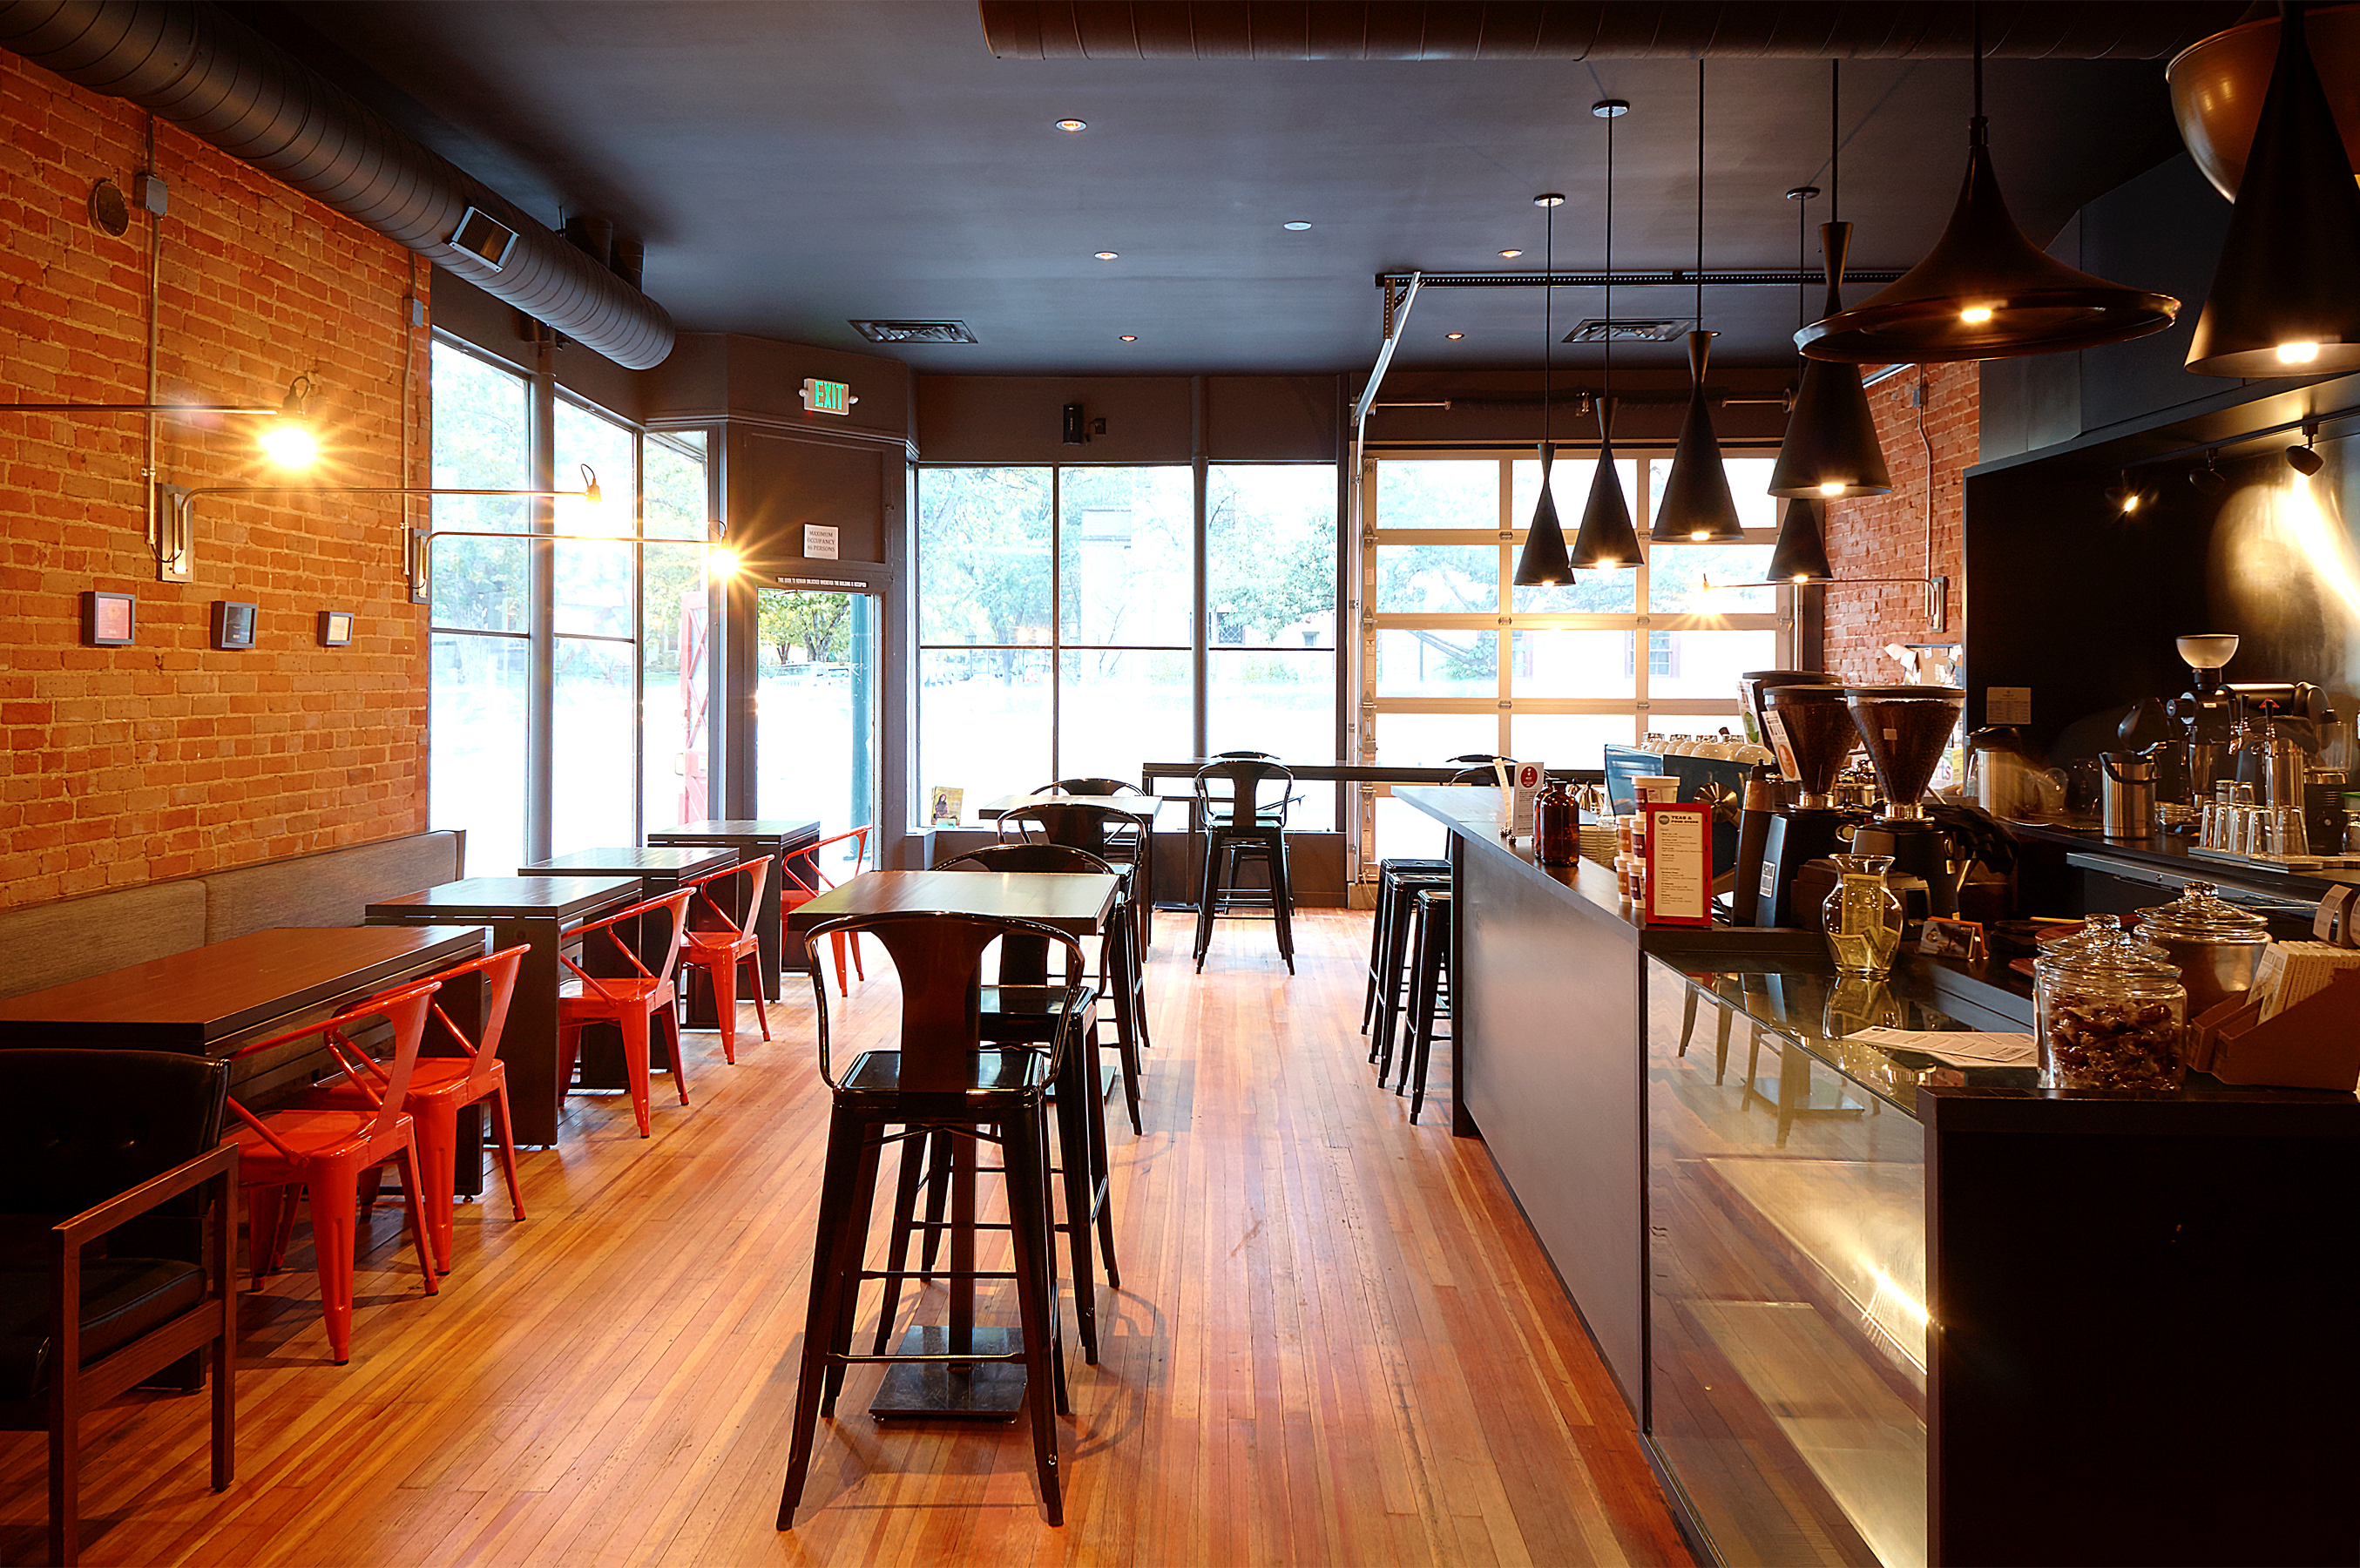 Novo Coffee Shop 6th & Gilpin from back of space Open studio architecture OSA